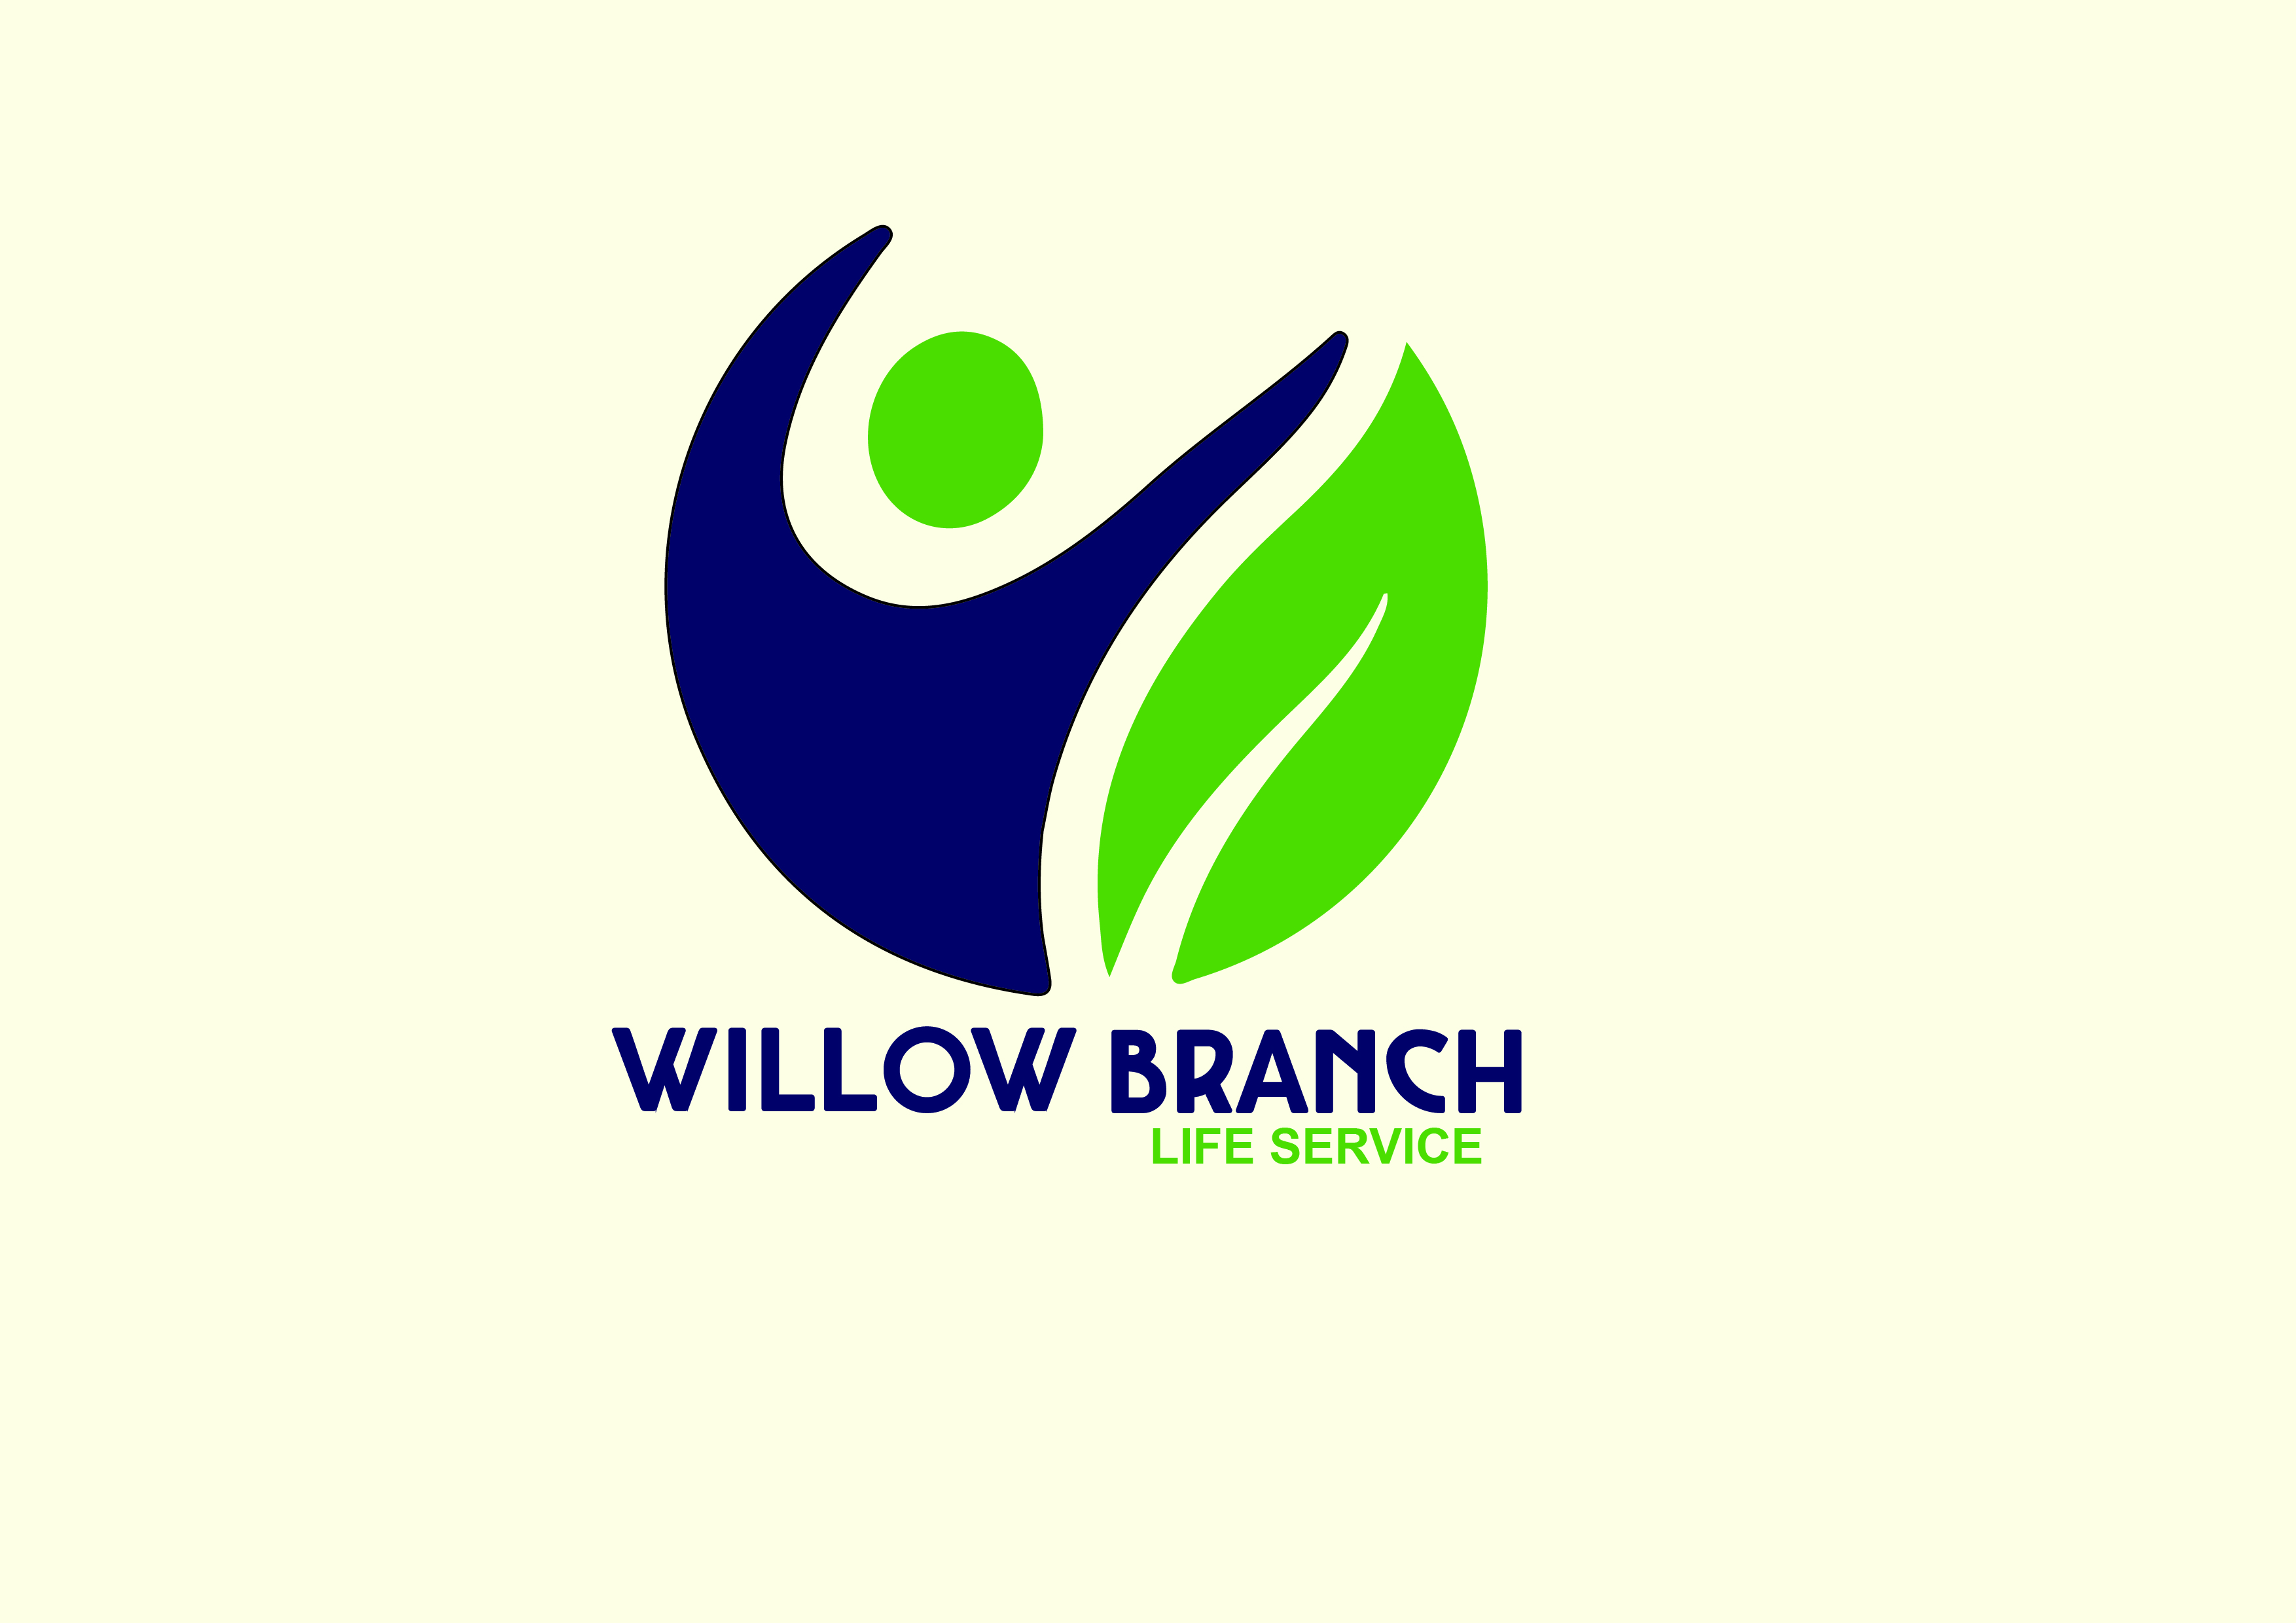 Logo Design by Anum Aamir - Entry No. 96 in the Logo Design Contest Artistic Logo Design for Willow Branch Life Service.